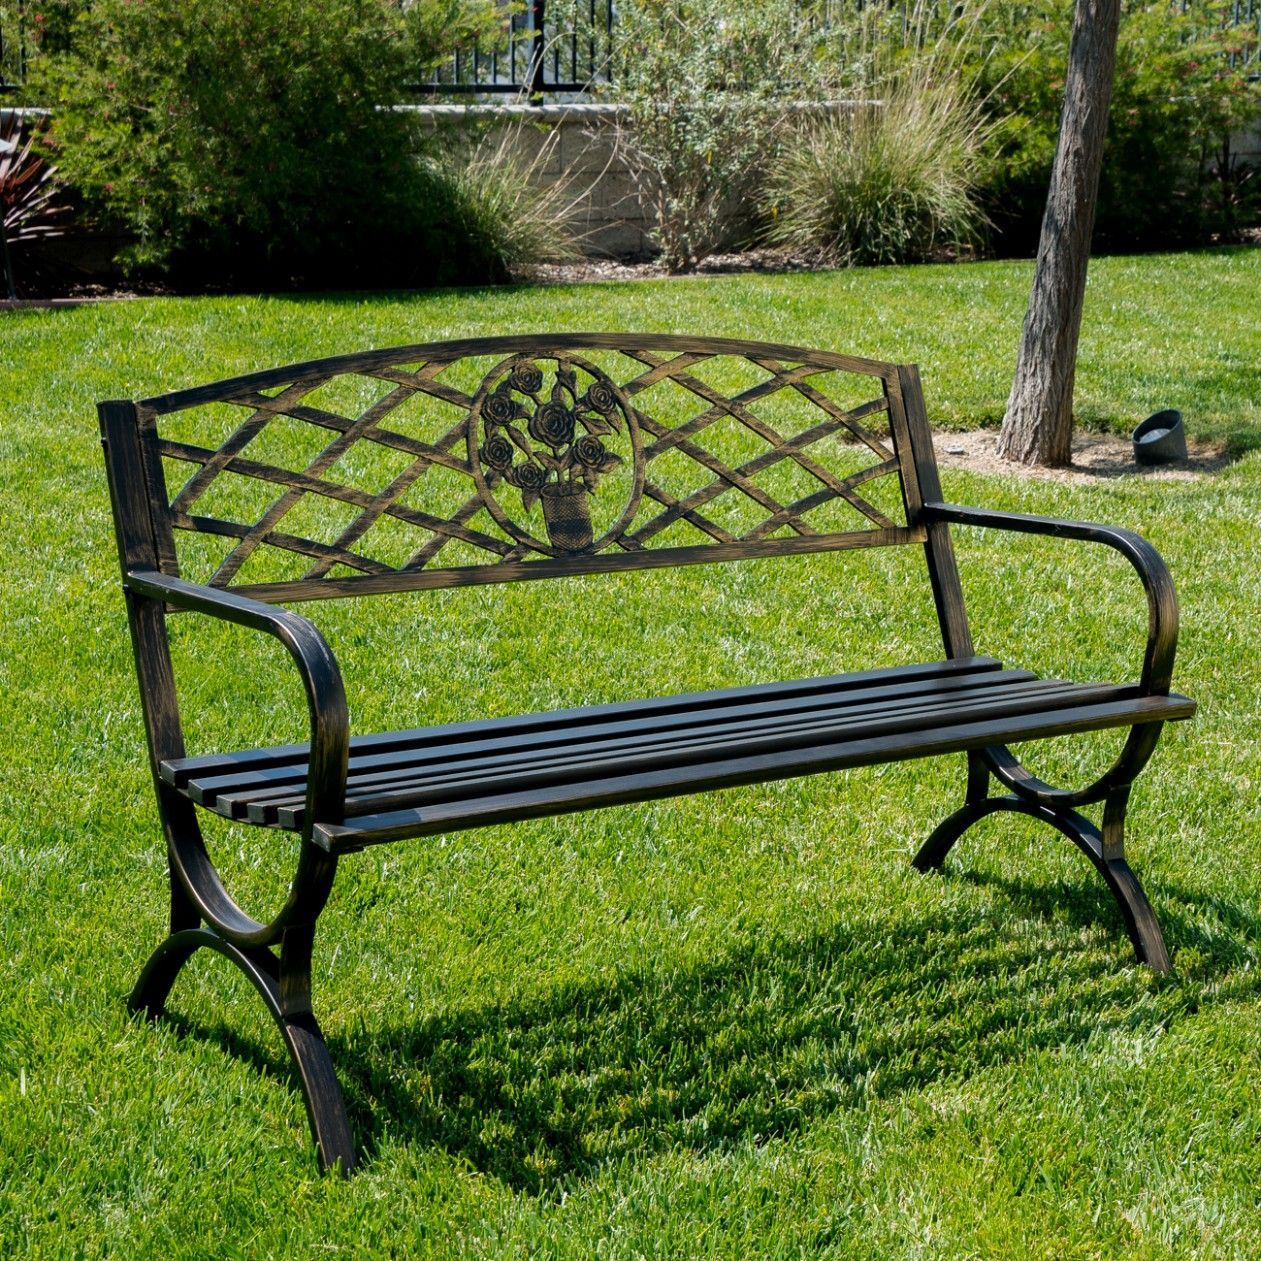 Seven Ways On How To Prepare For Garden With Chair Images in 3